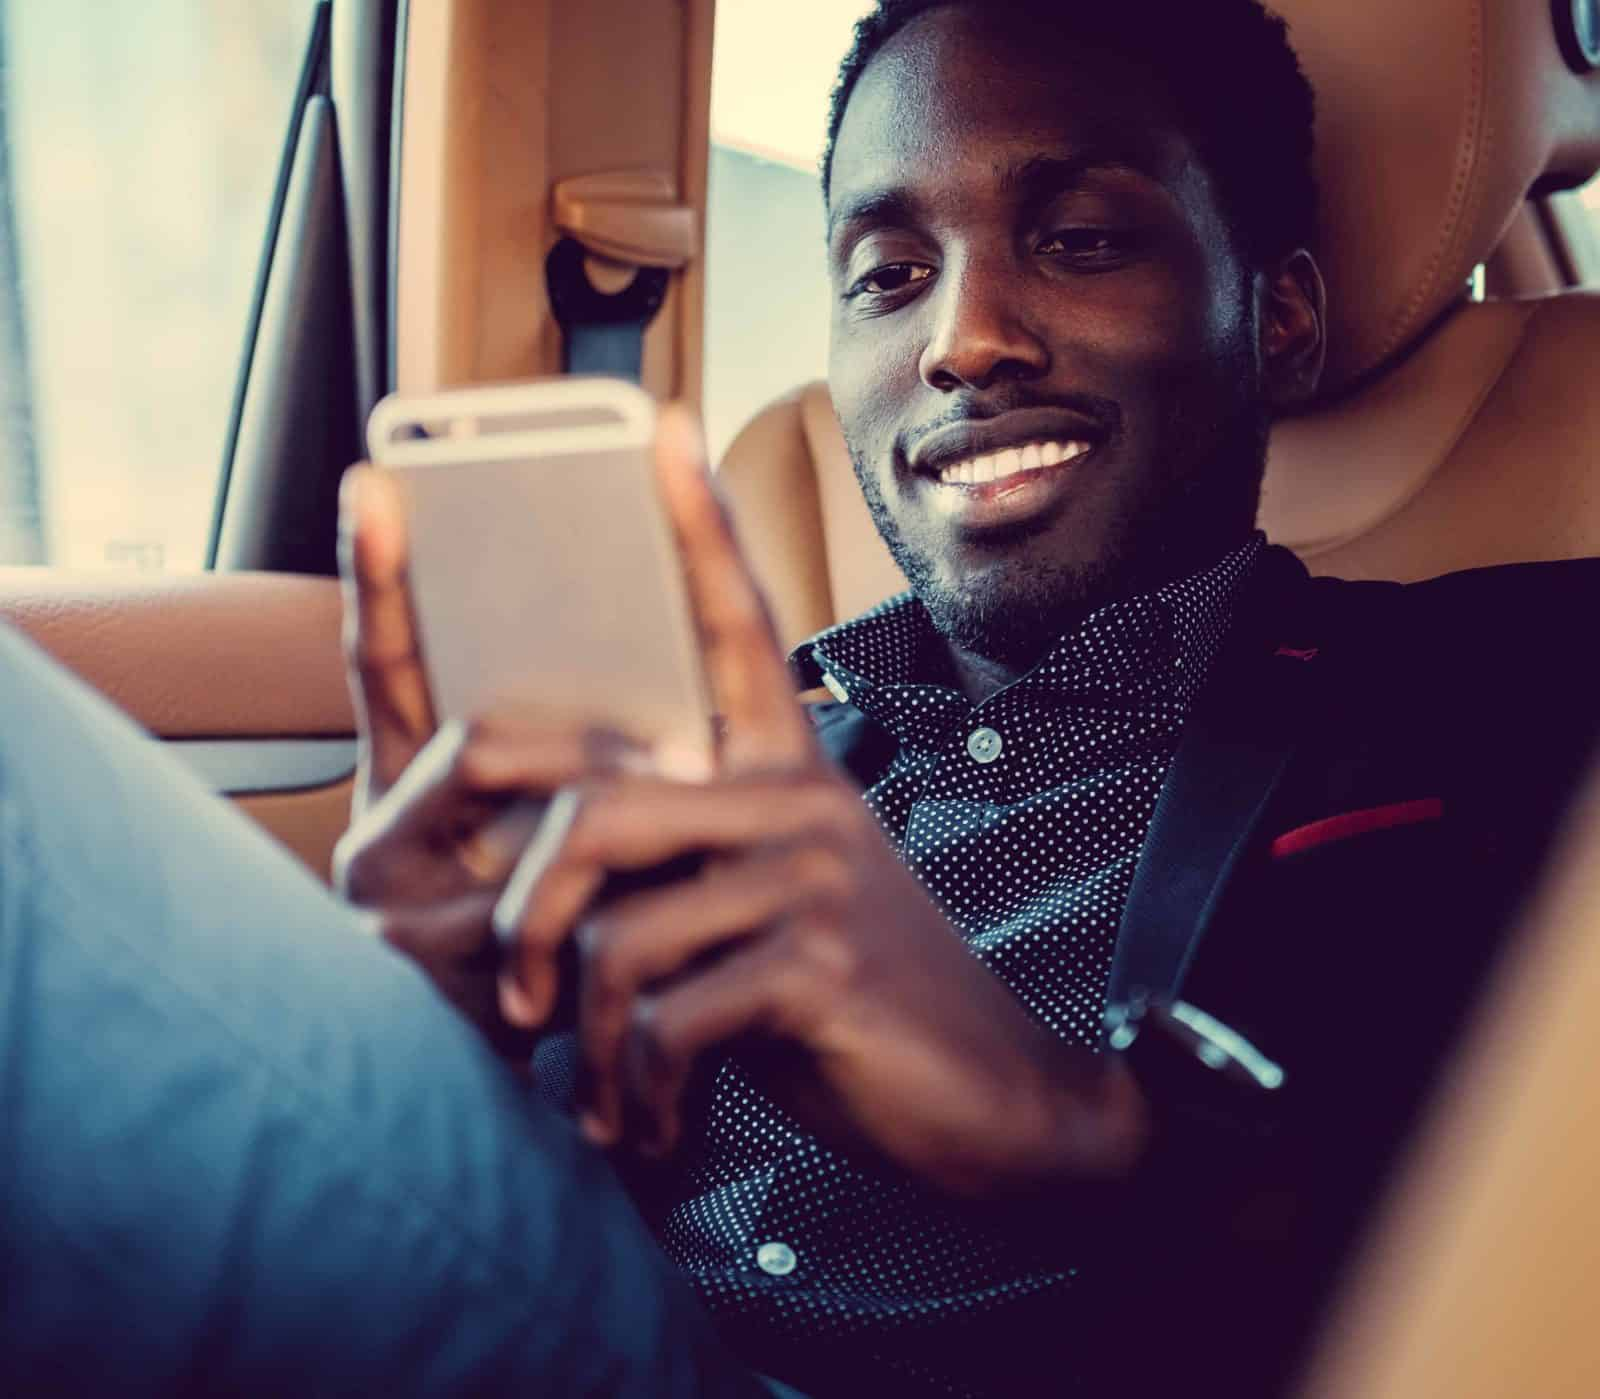 Well dressed smiling African American man using a smartphone in a car.